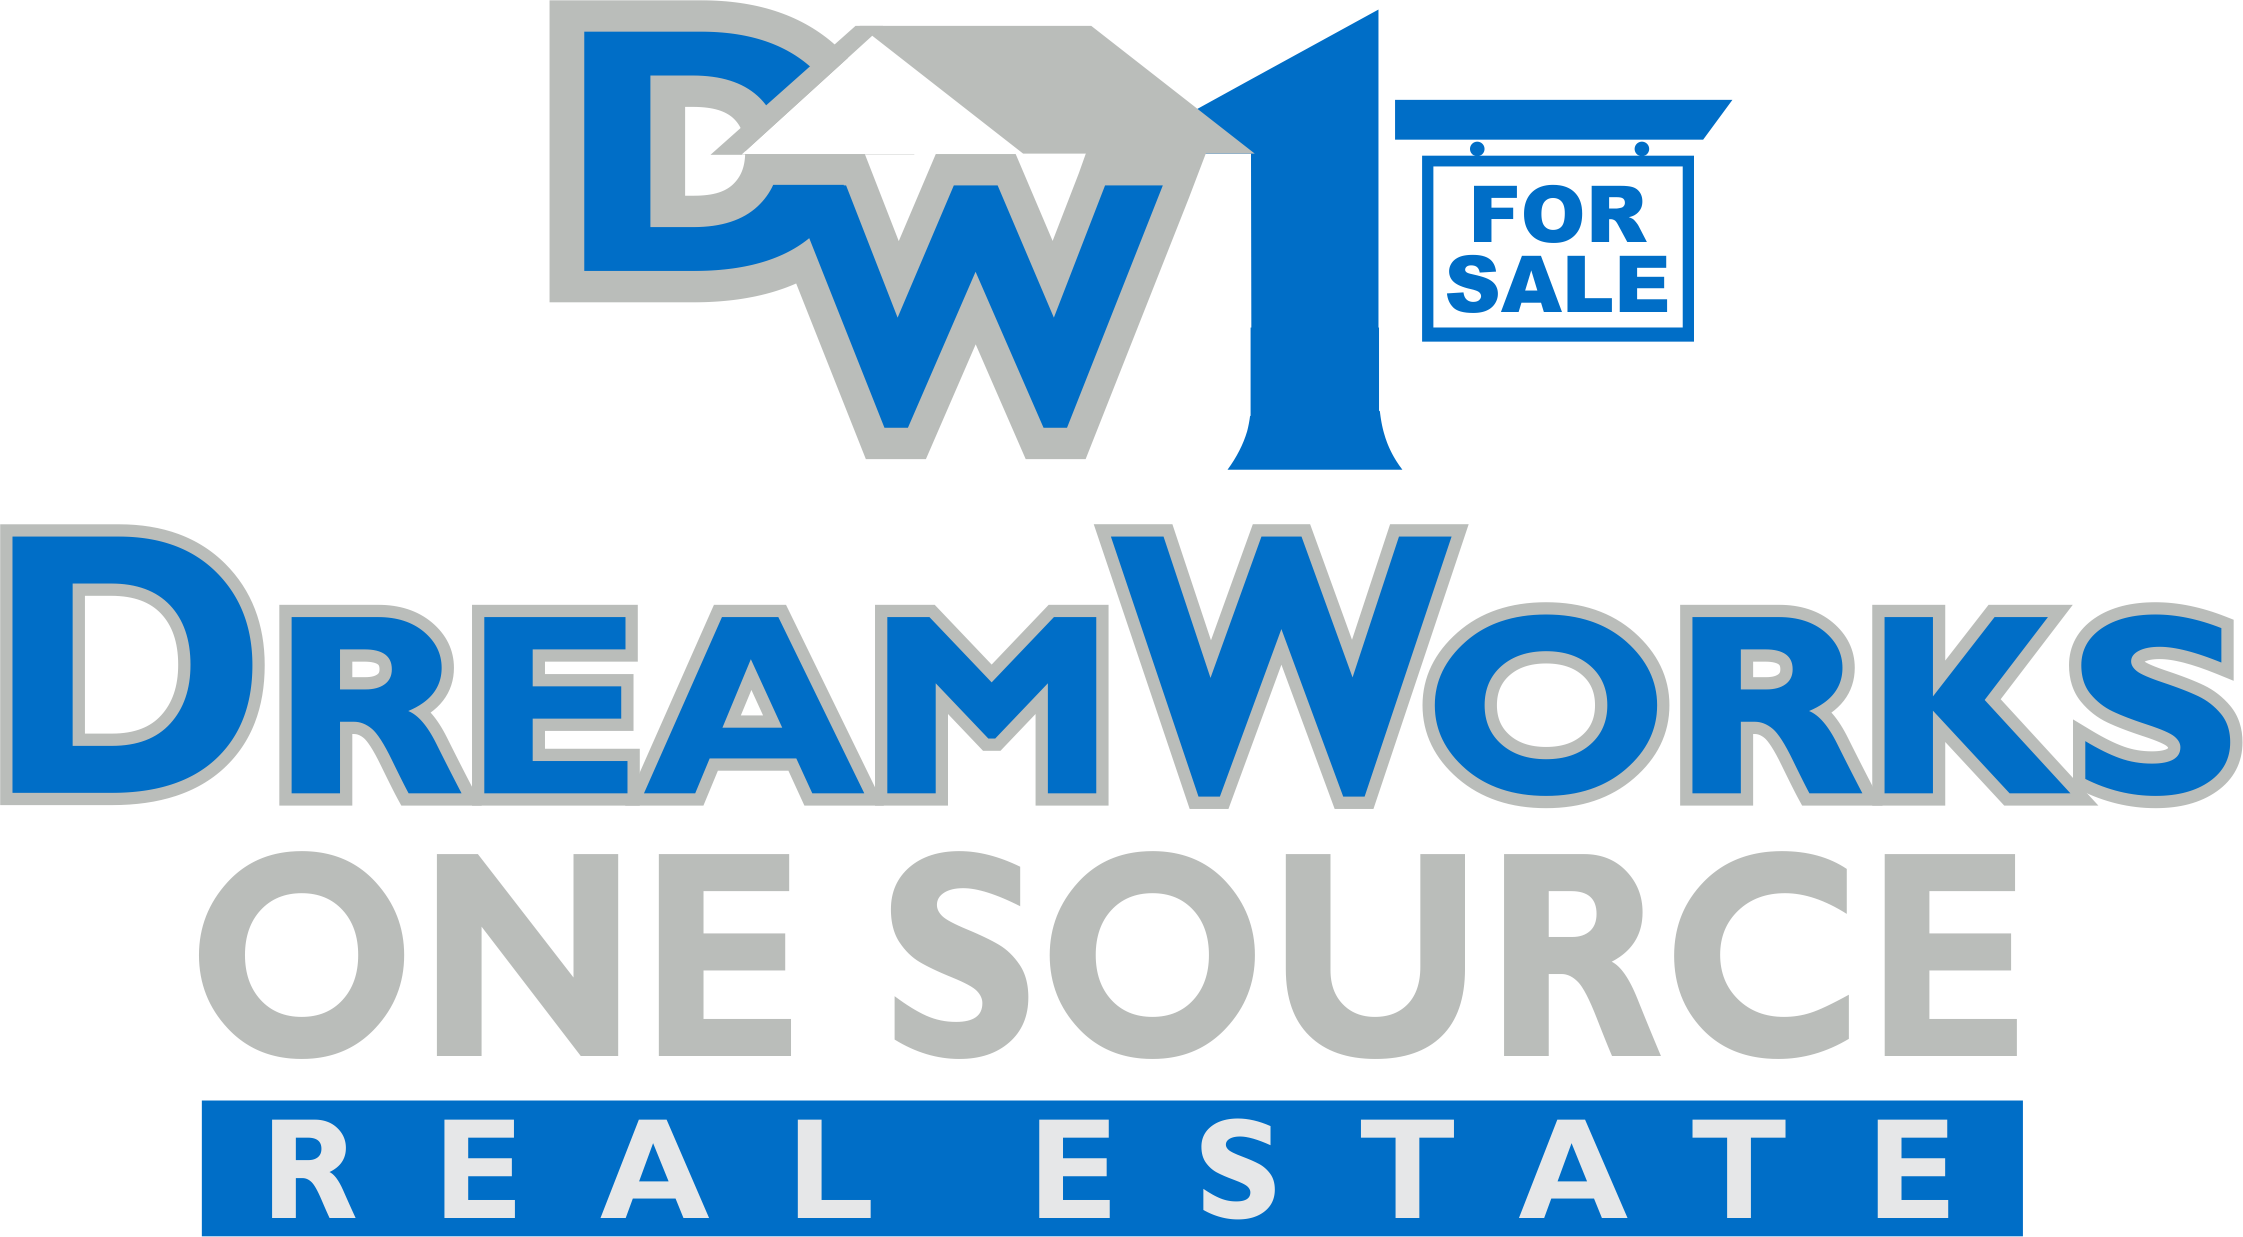 DreamWorks One Source Real Estate